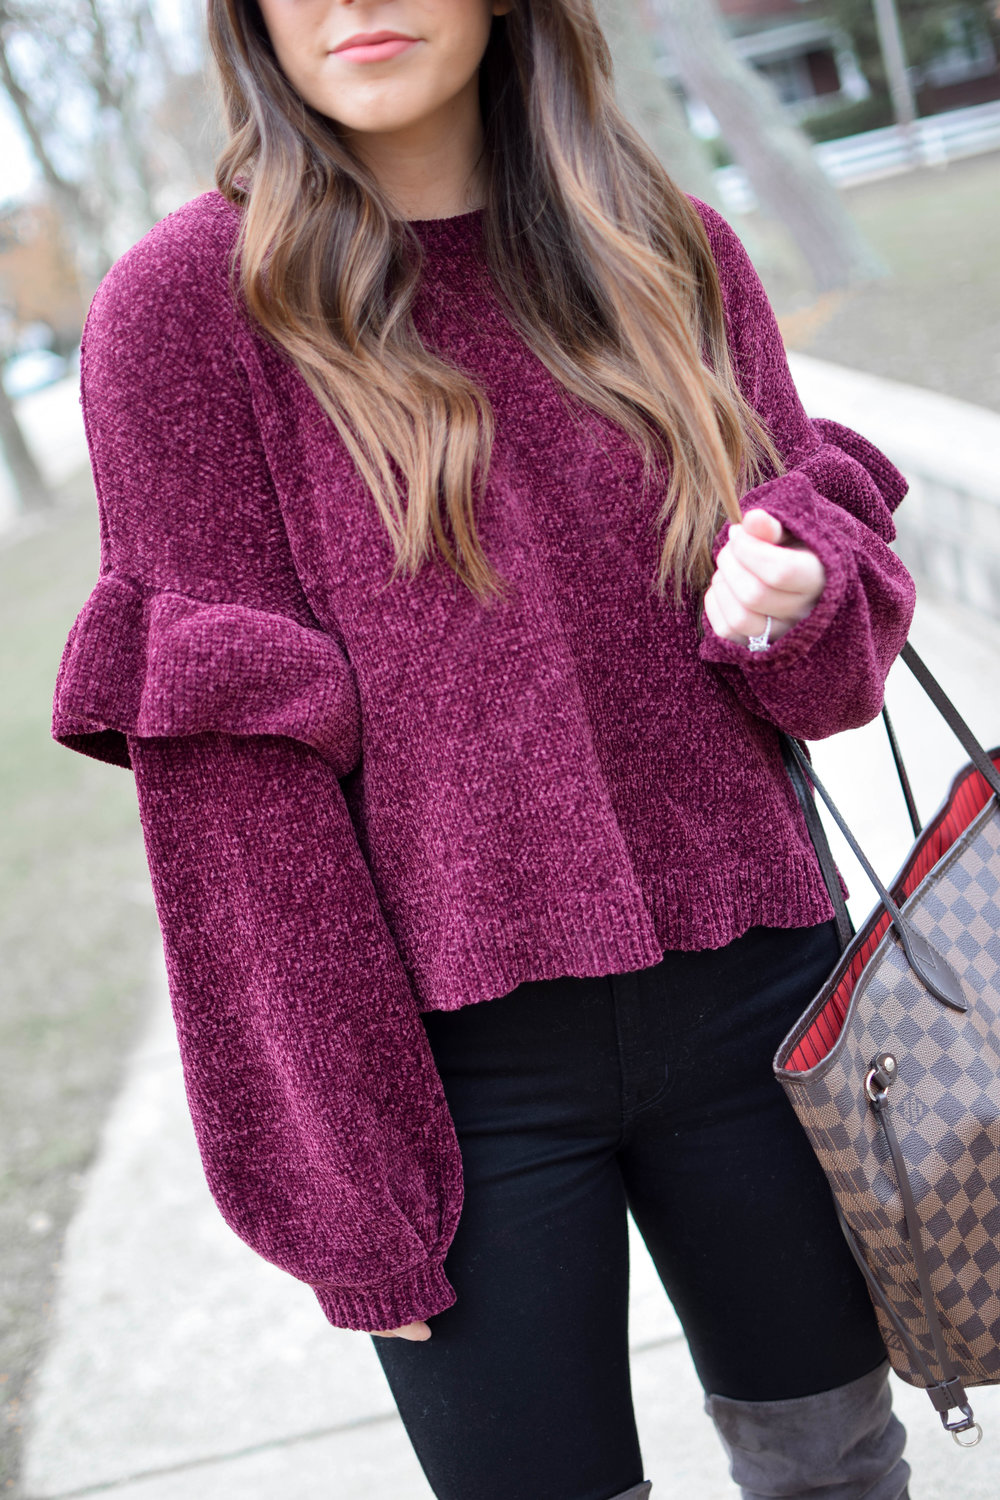 Holiday Outfit Idea: Chenille Ruffle Sleeve Sweater | Pine Barren Beauty | winter outfit idea, winter outfit inspiration, Christmas outfit idea, over the knee boots, black high waisted denim